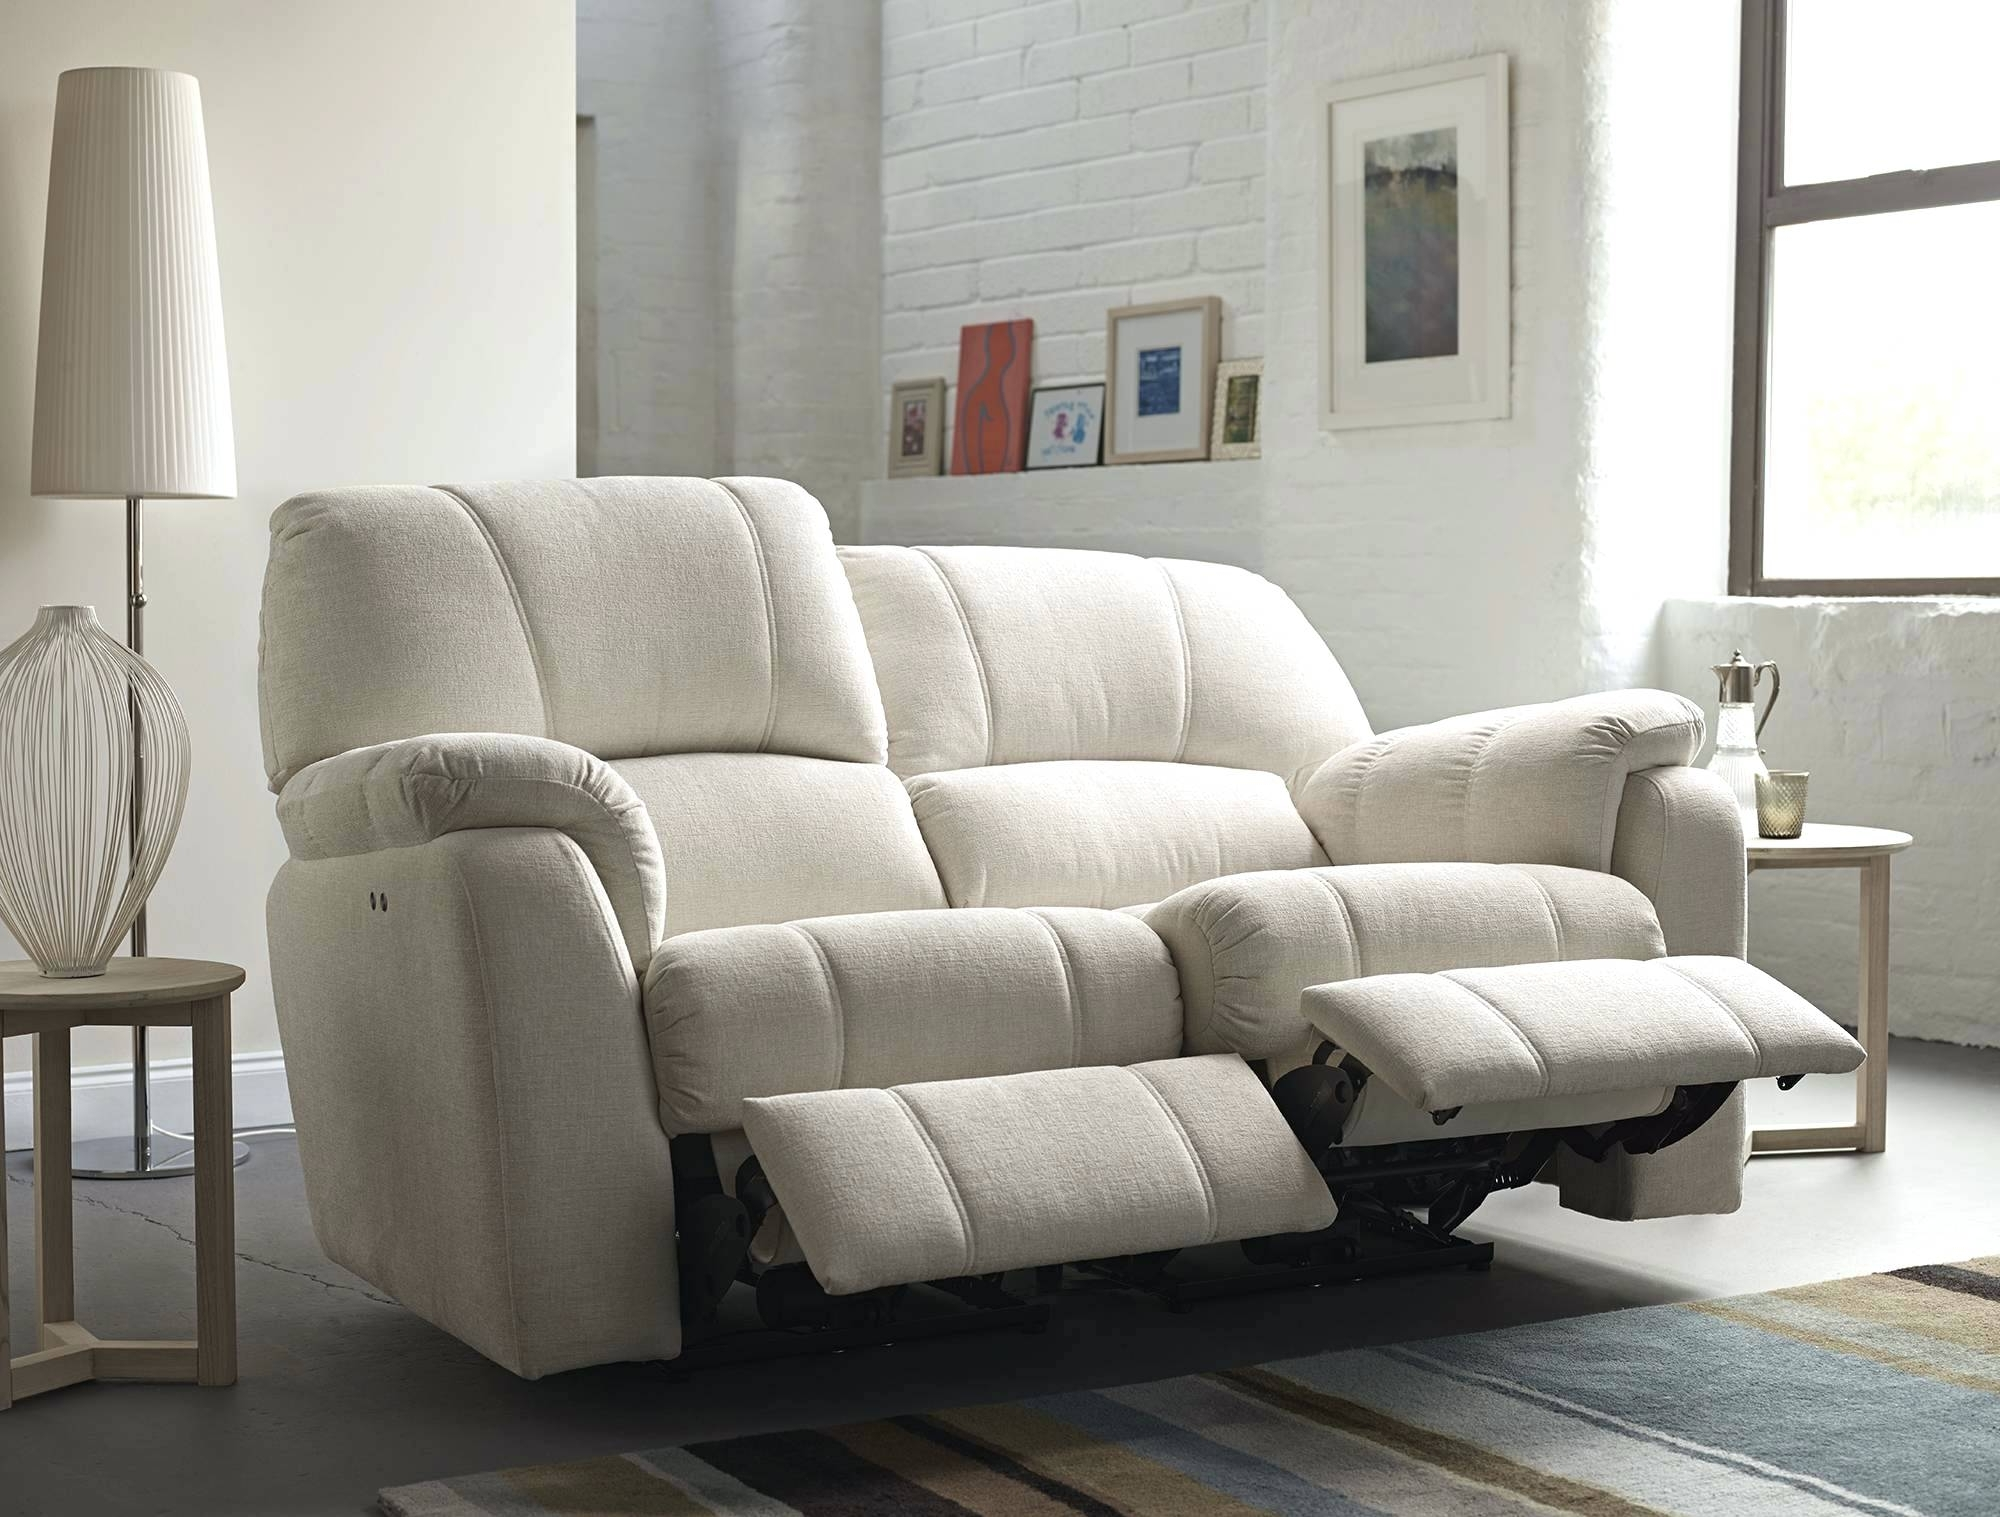 Popular Recliners Chairs & Sofa : Fresh 39 Remarkable 2 Seater Leather Within 2 Seat Recliner Sofas (View 11 of 15)